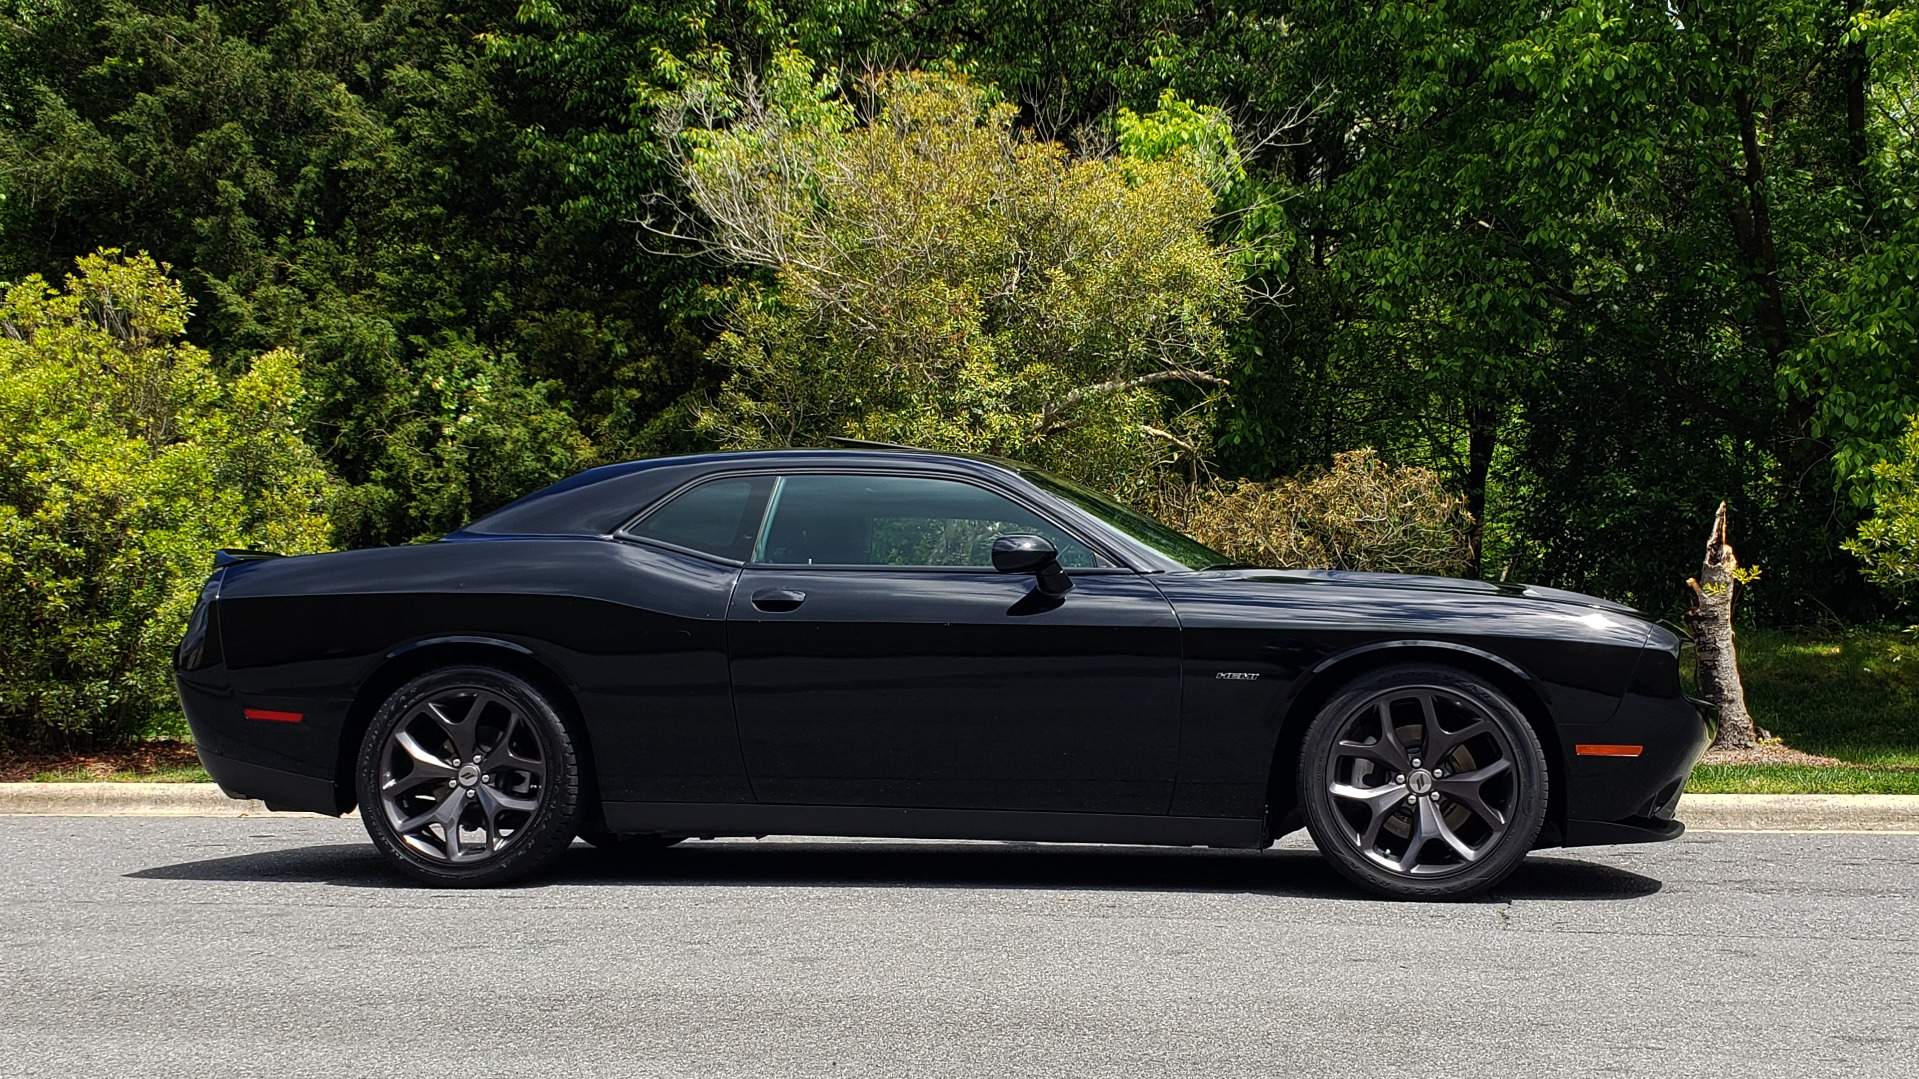 Used 2017 Dodge CHALLENGER R/T / 5.7L HEMI V8 / 8-SPD AUTO / SUNROOF / REARVIEW for sale Sold at Formula Imports in Charlotte NC 28227 7